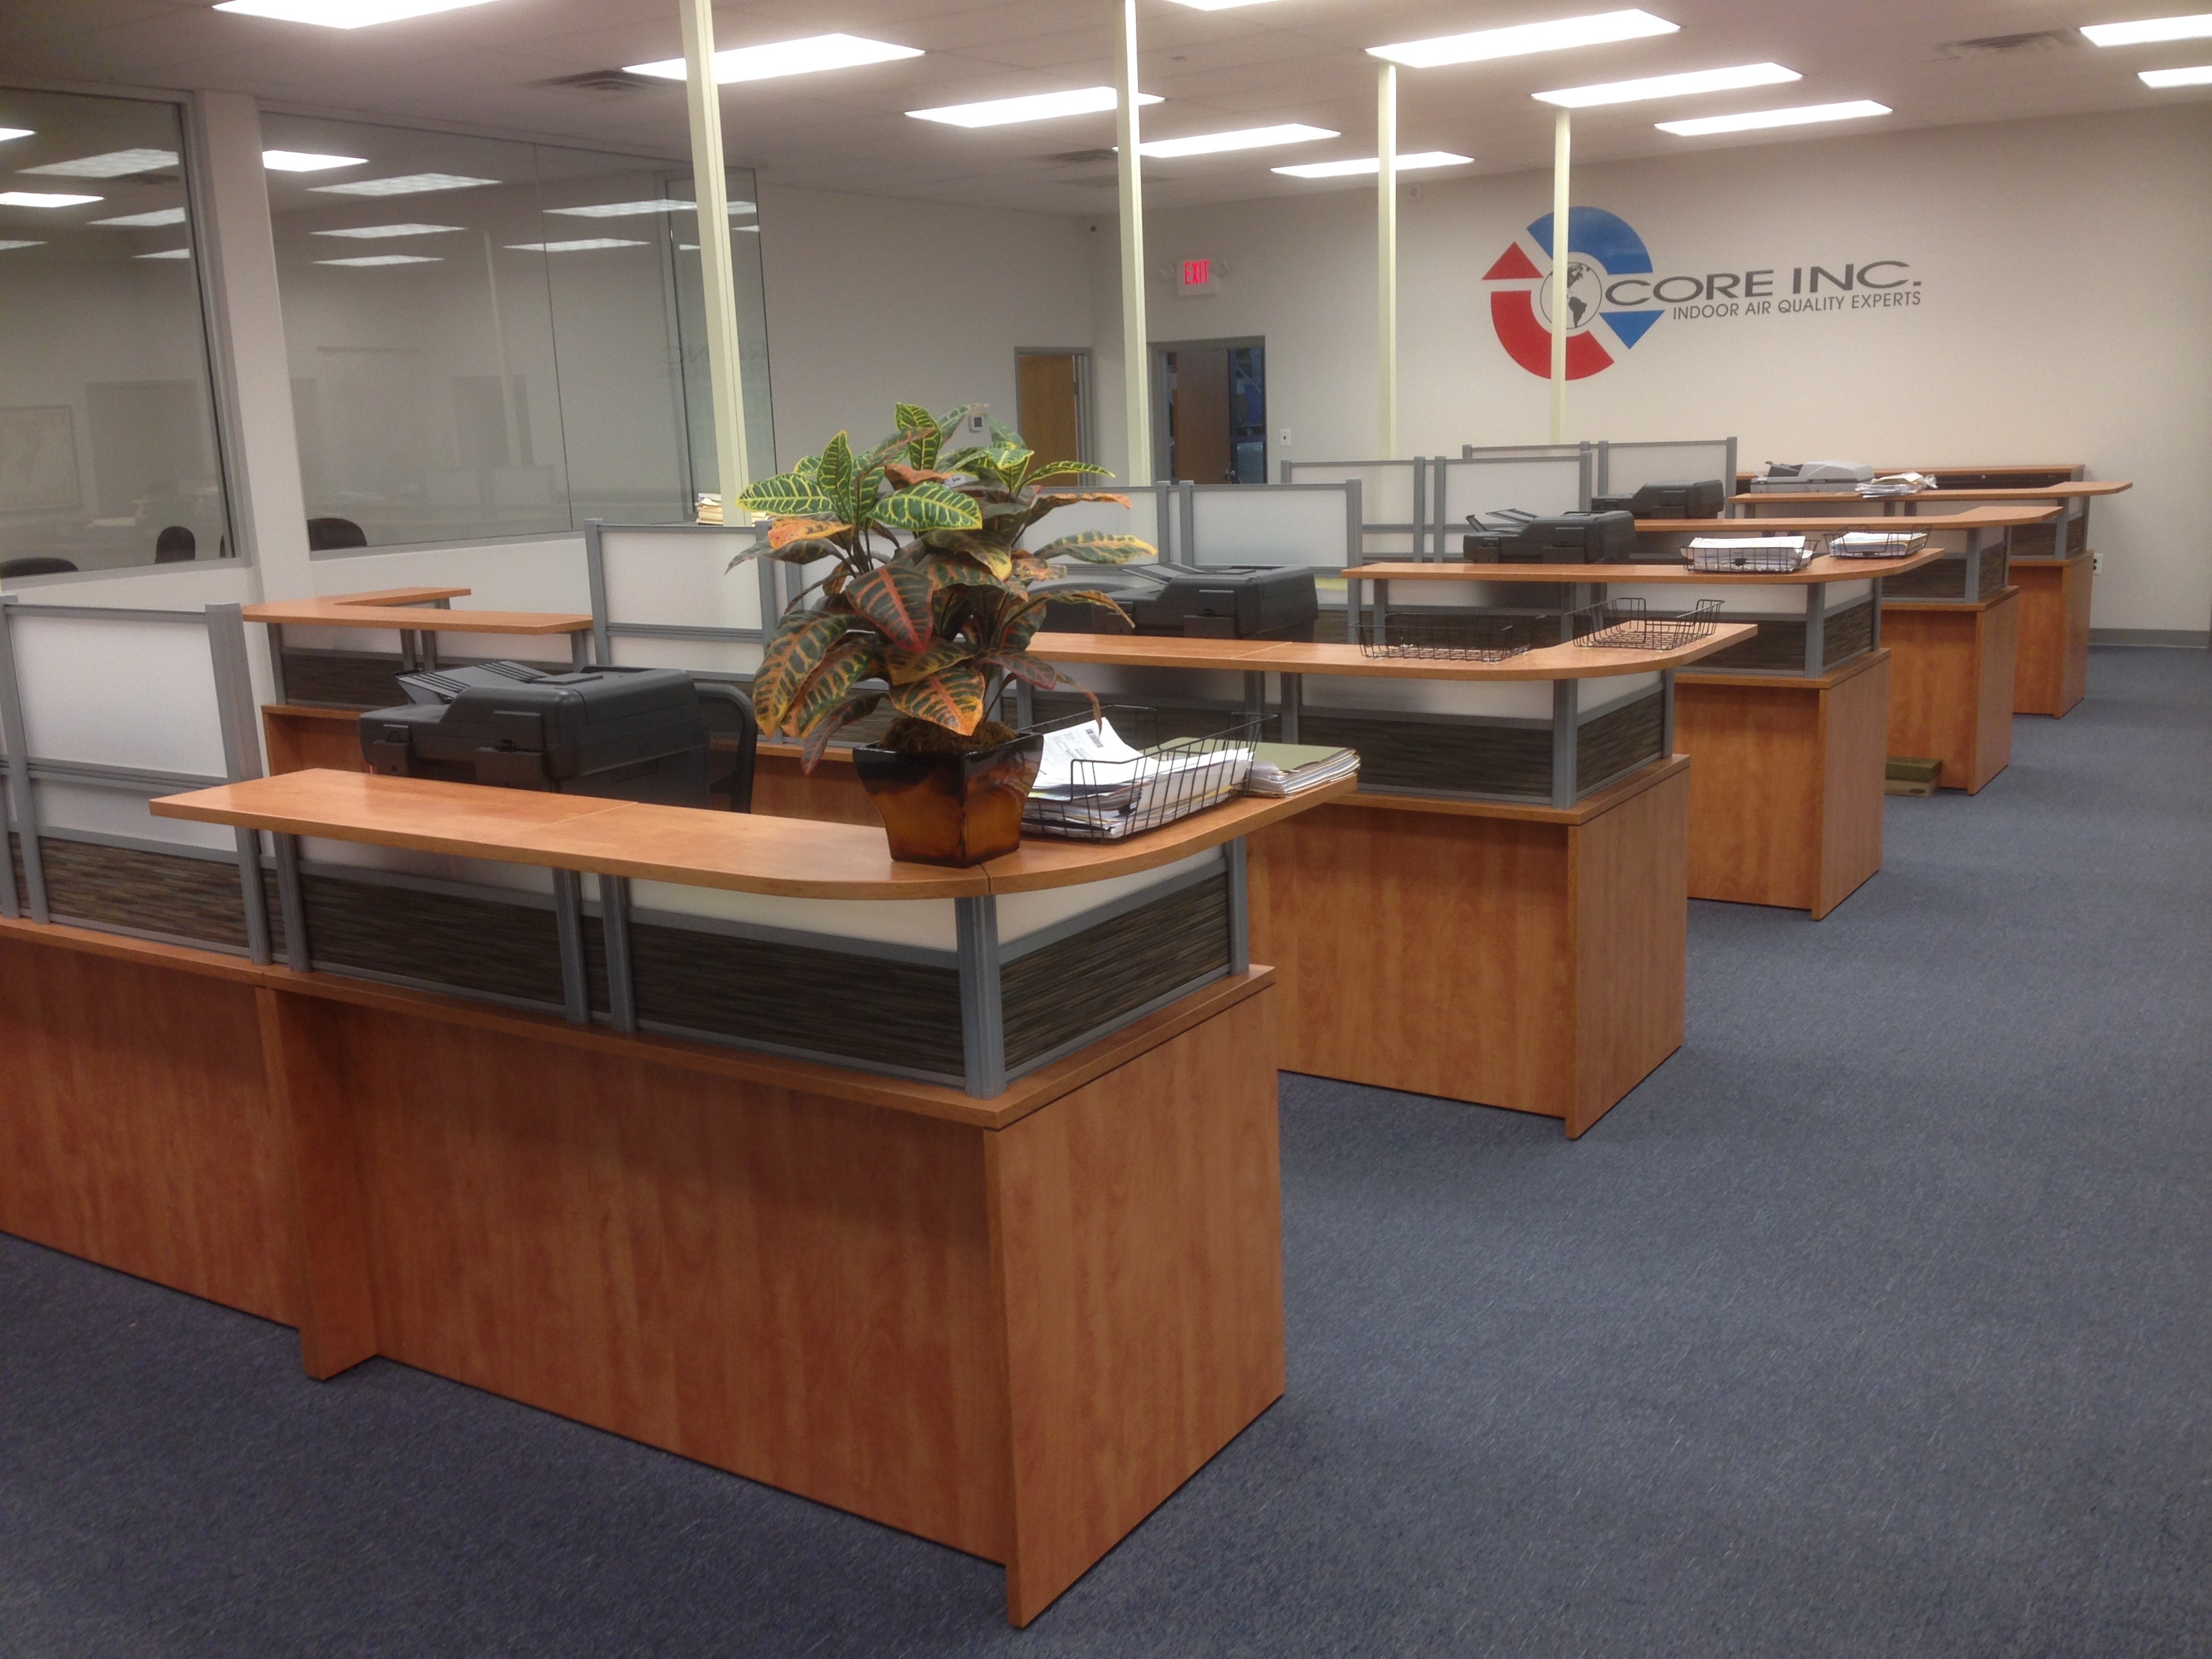 new office furniture nj, discount new desks nj, discount new